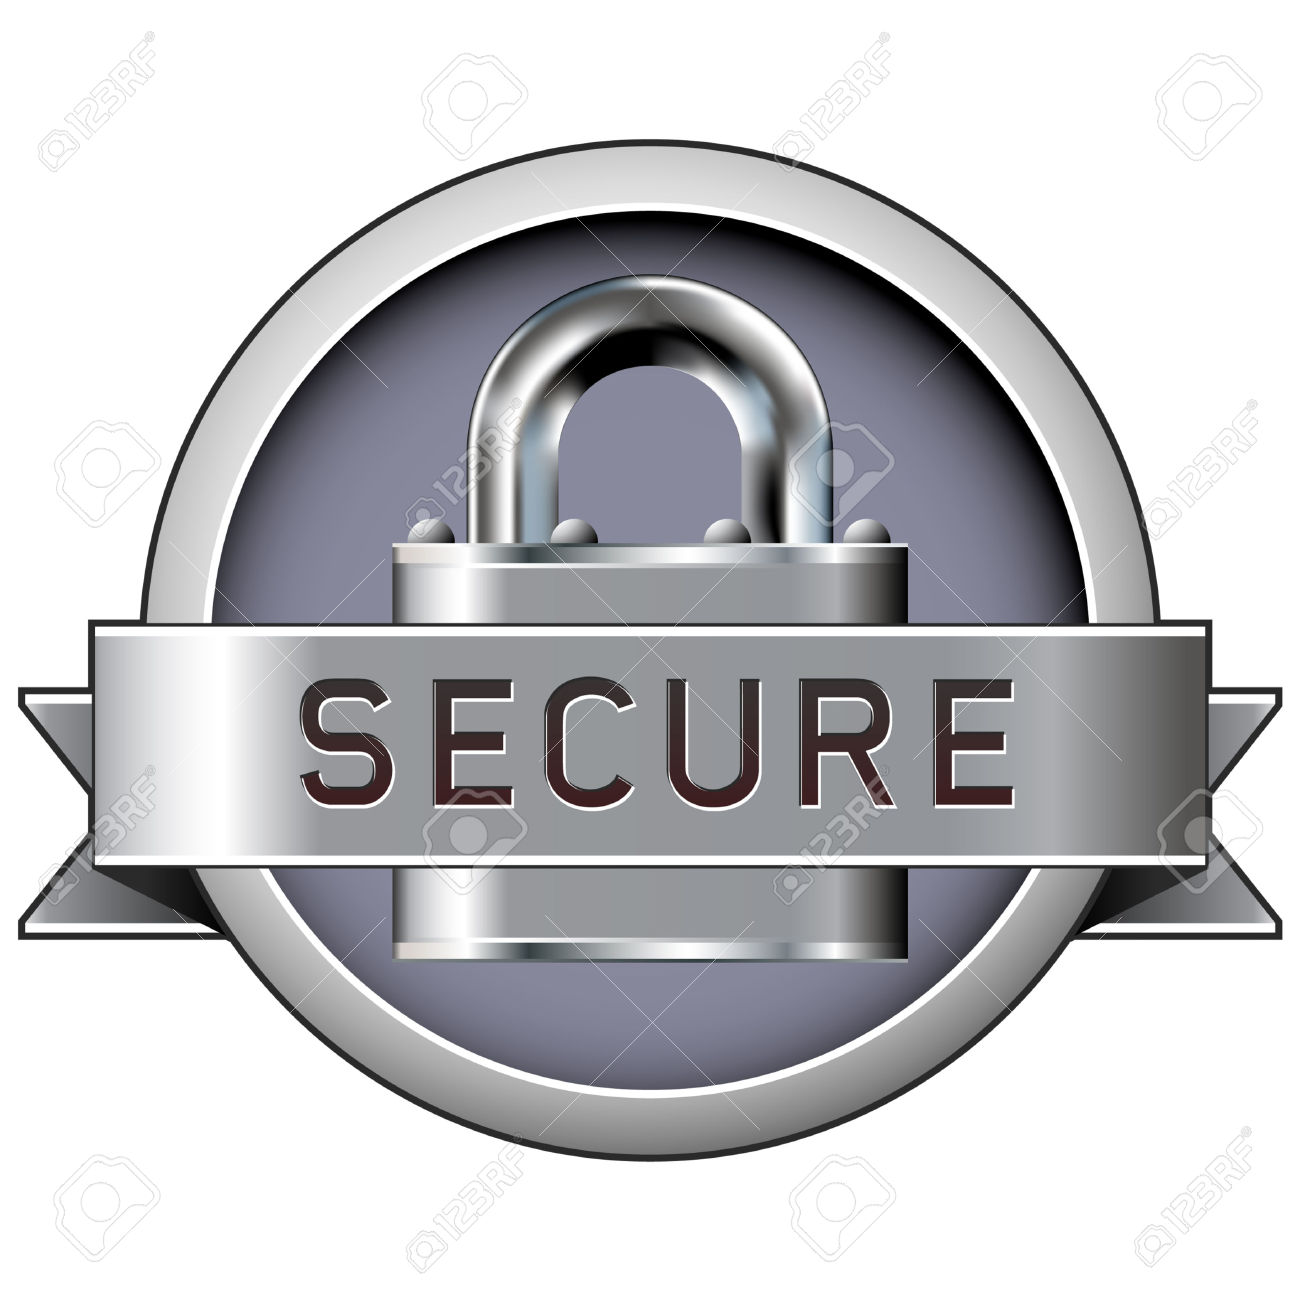 Secured clipart.